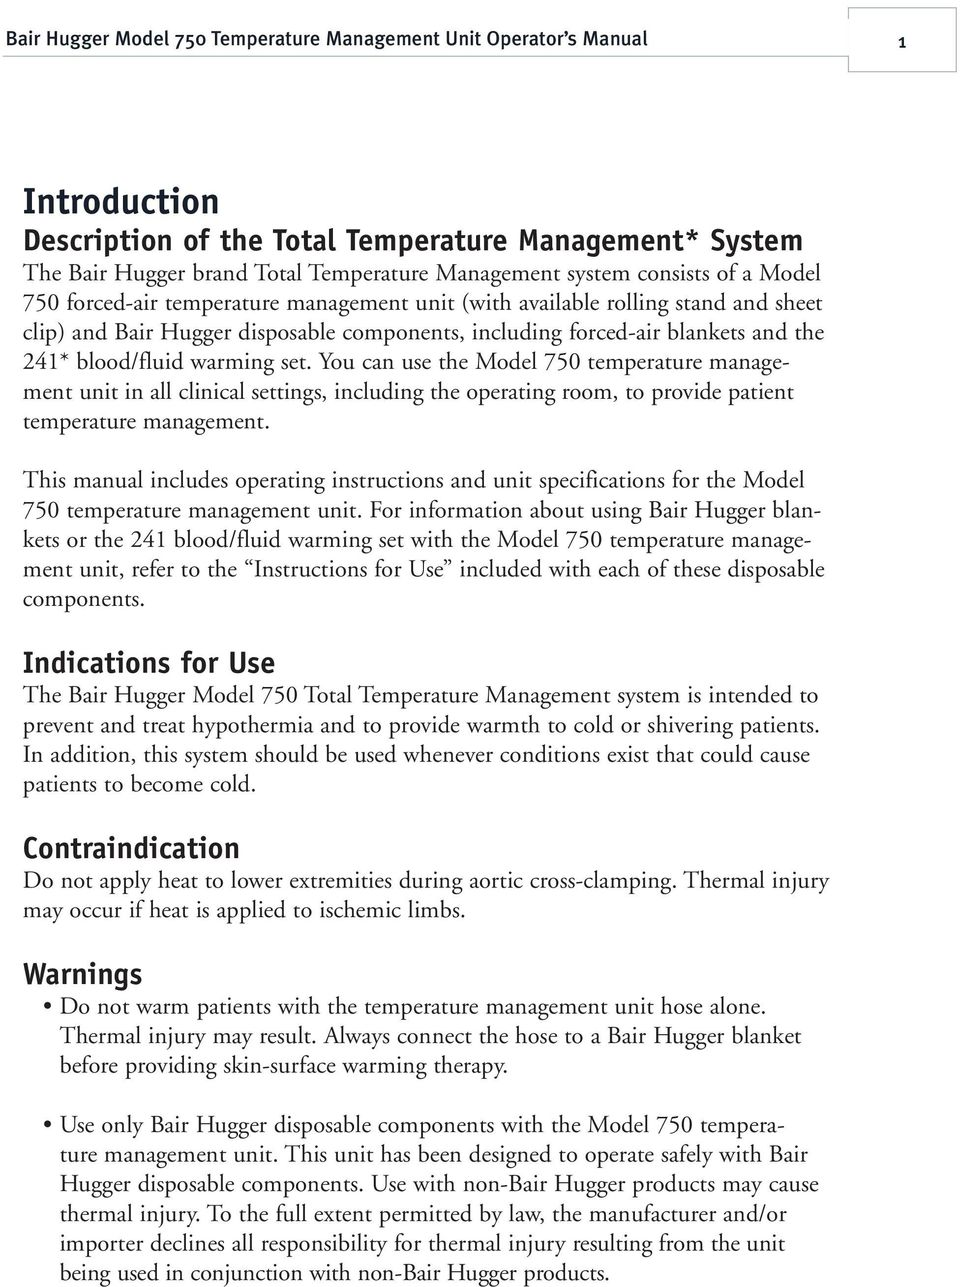 blood/fluid warming set. You can use the Model 750 temperature management unit in all clinical settings, including the operating room, to provide patient temperature management.